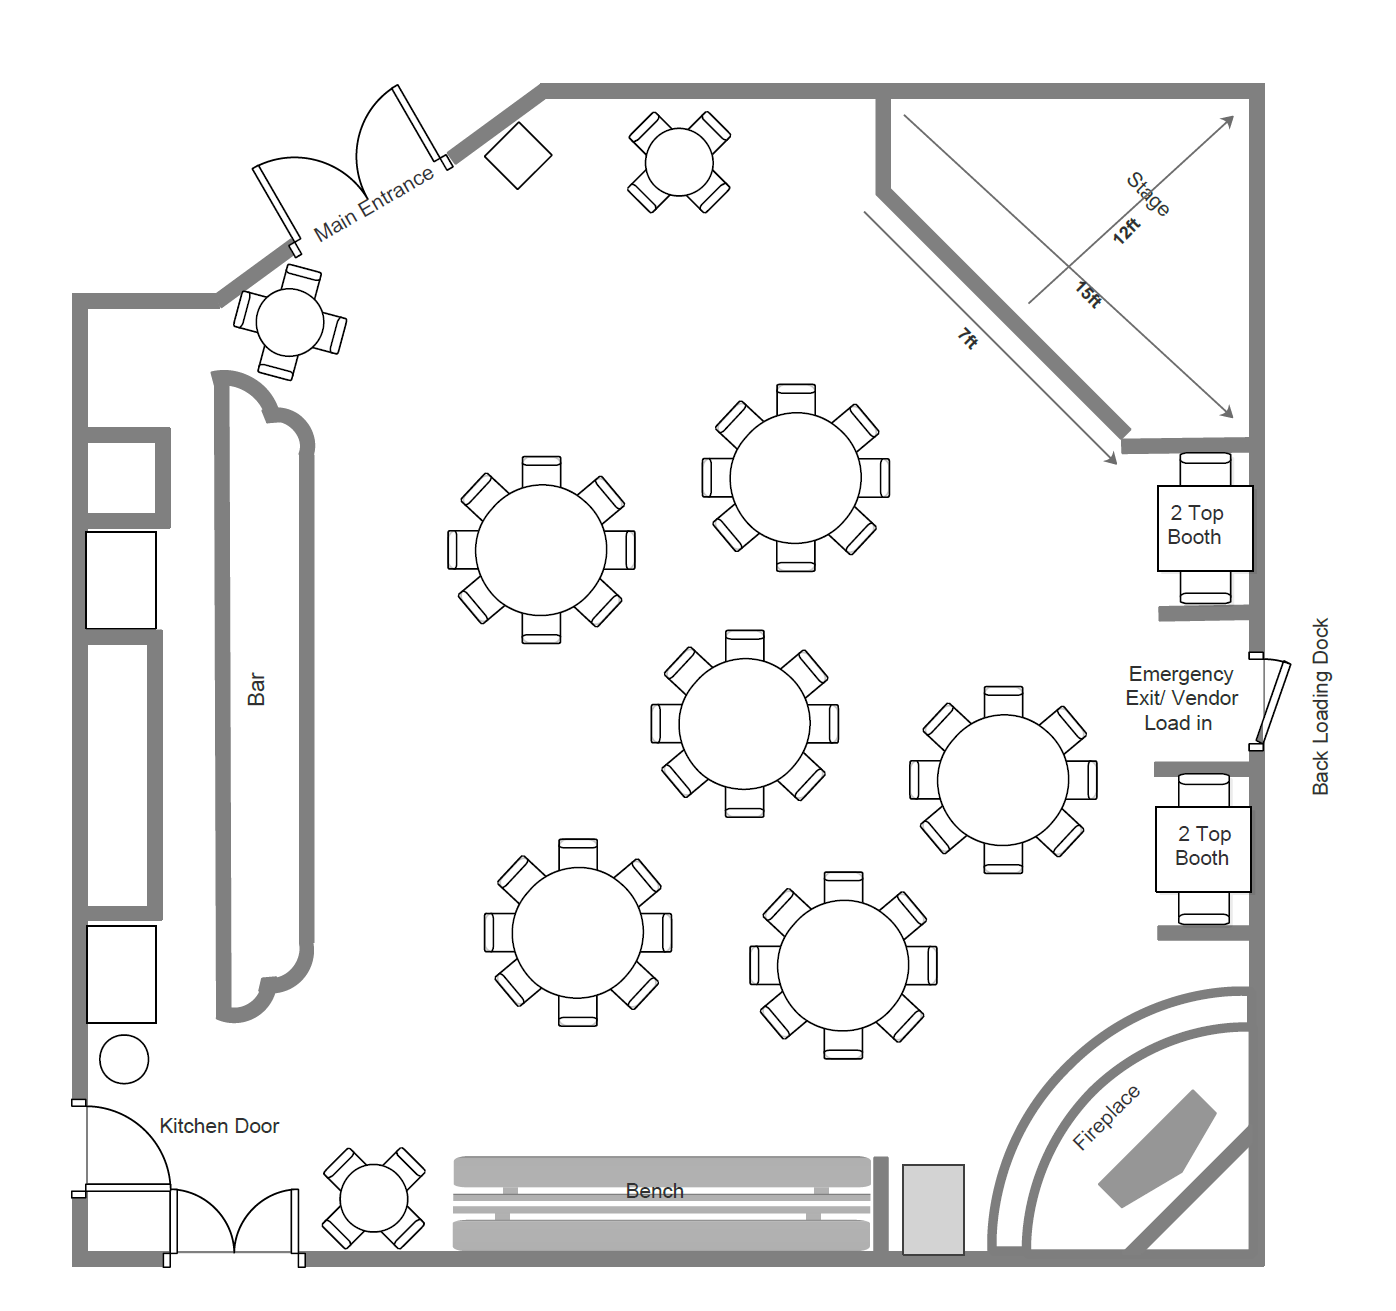 pup floor plan.png